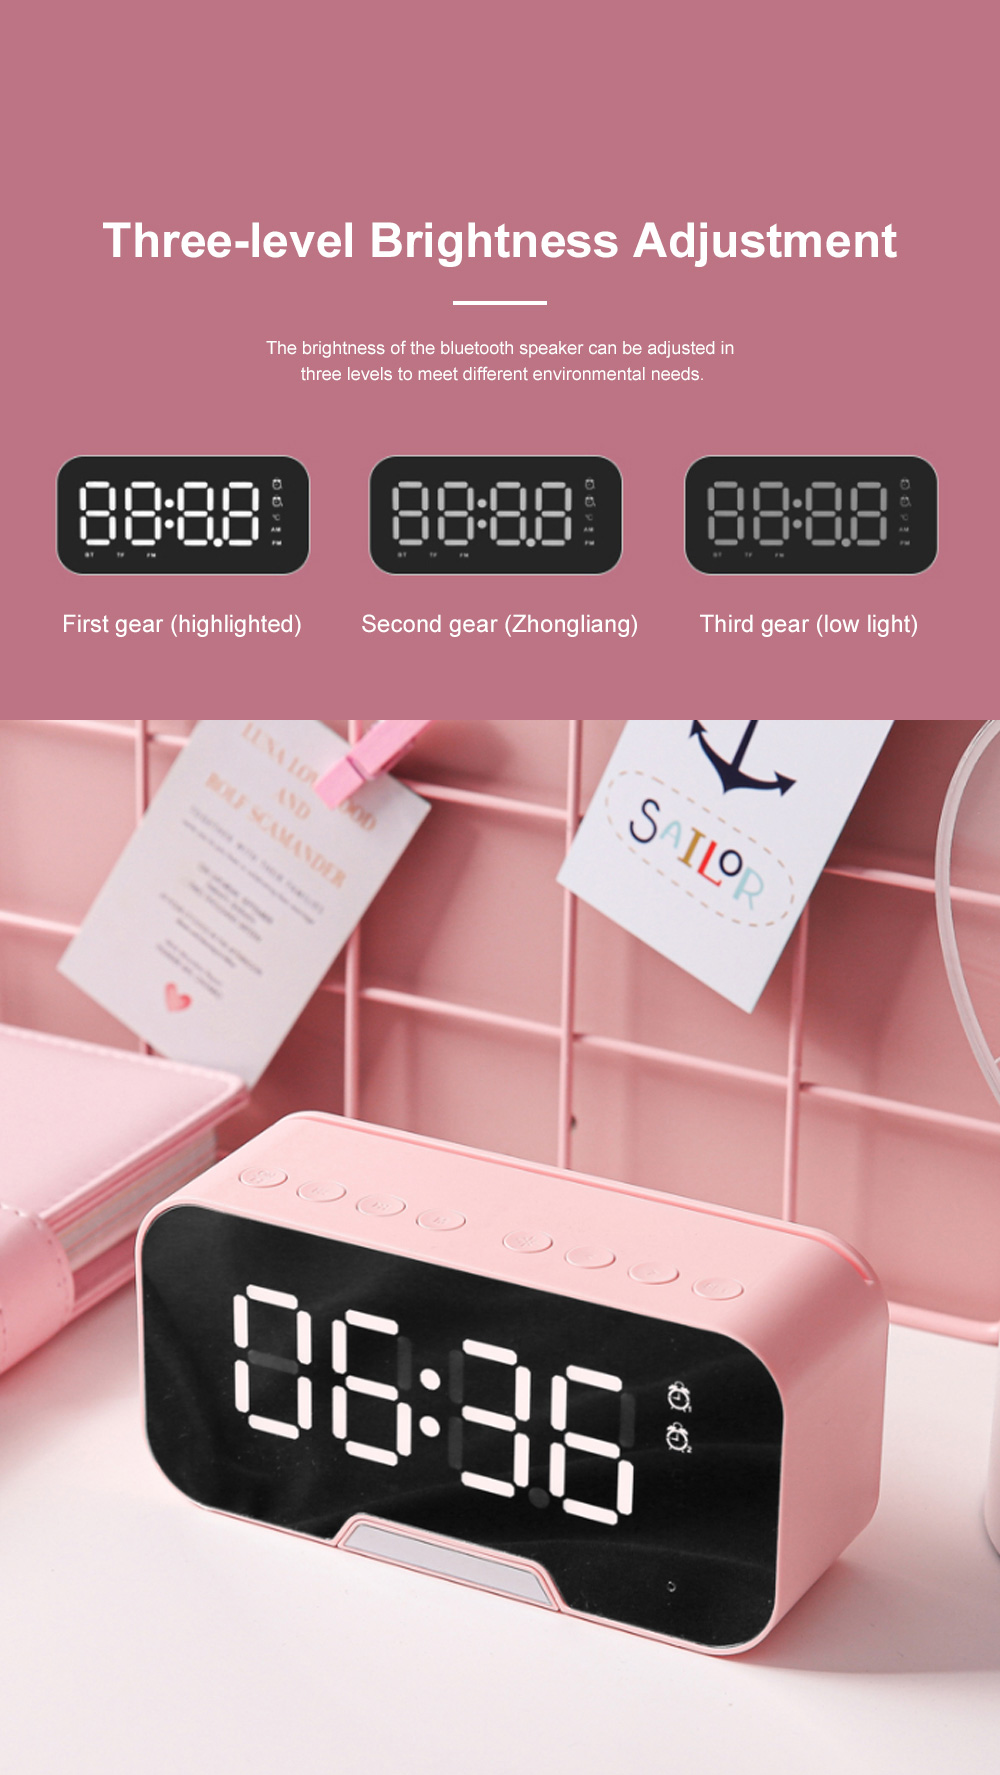 Bluetooth Speakers Alarm Clock Radio with Dual Alarms and 3 Level Brightness Adjustment and Stereo Sound 2